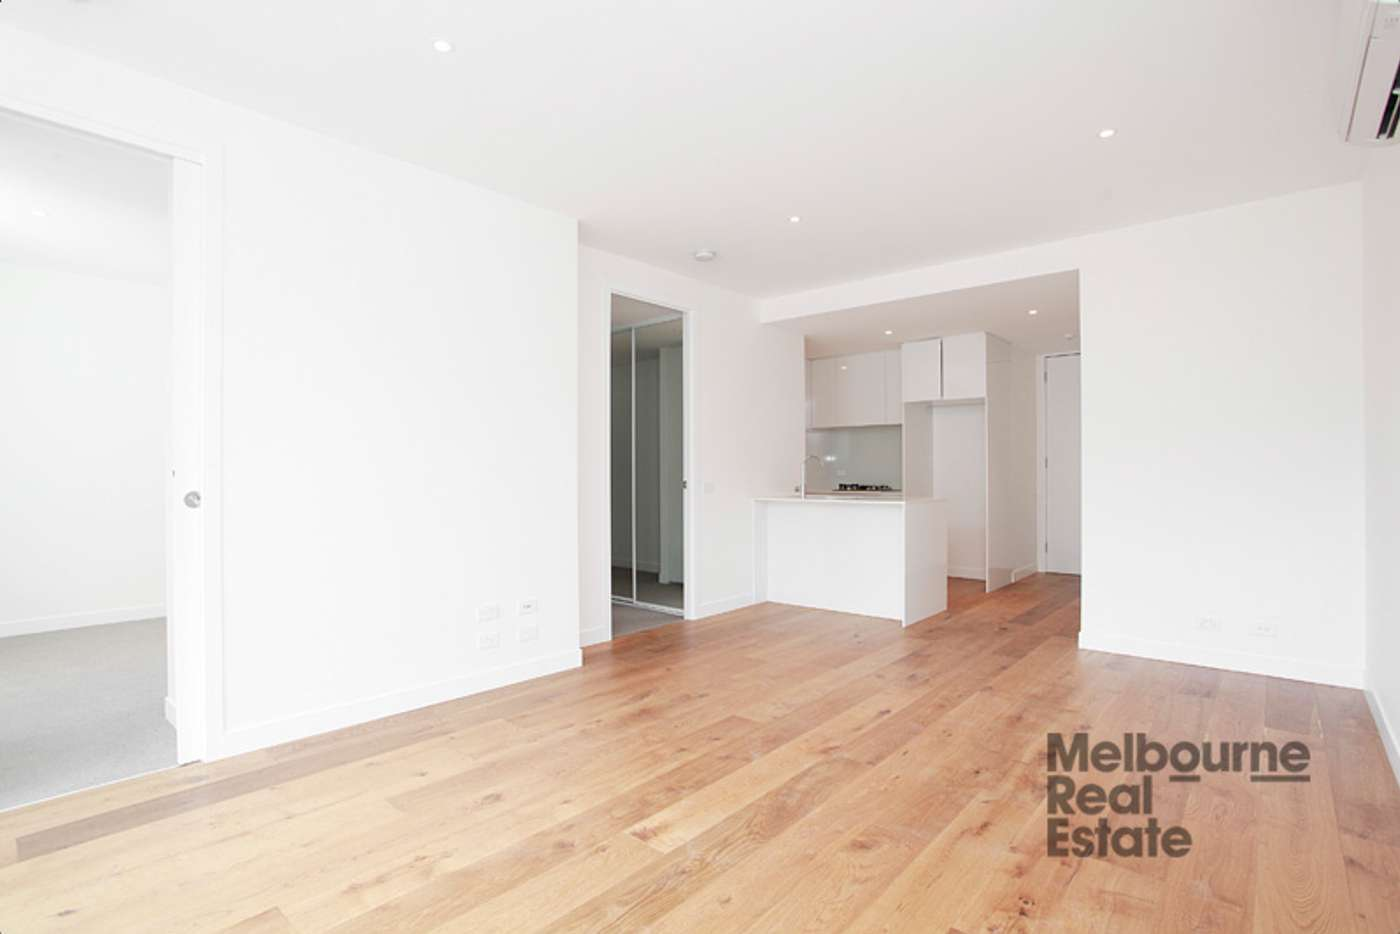 Main view of Homely apartment listing, 101/62-64 Station Street, Fairfield VIC 3078